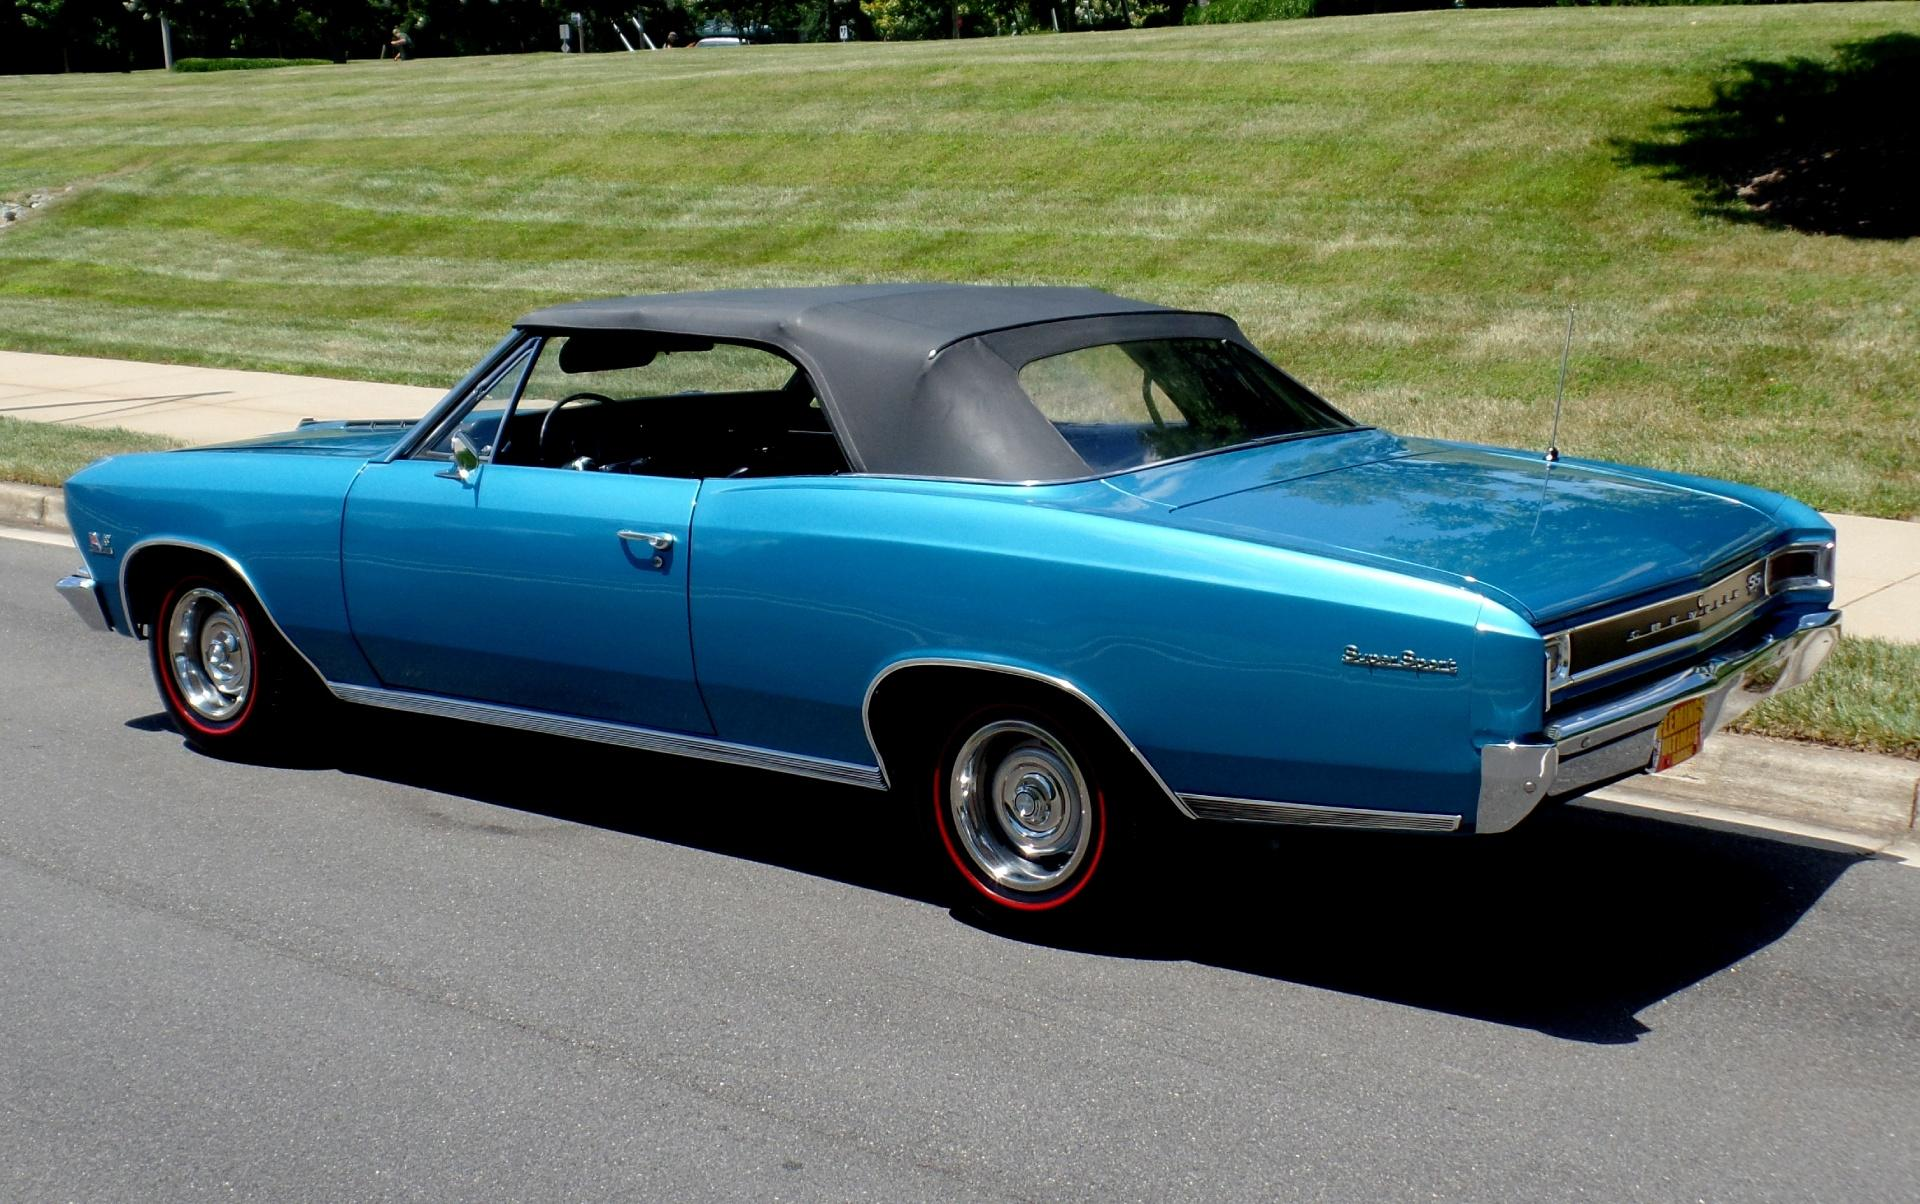 1966 Chevrolet Chevelle Ss396 Convertible Chevy Ss 396